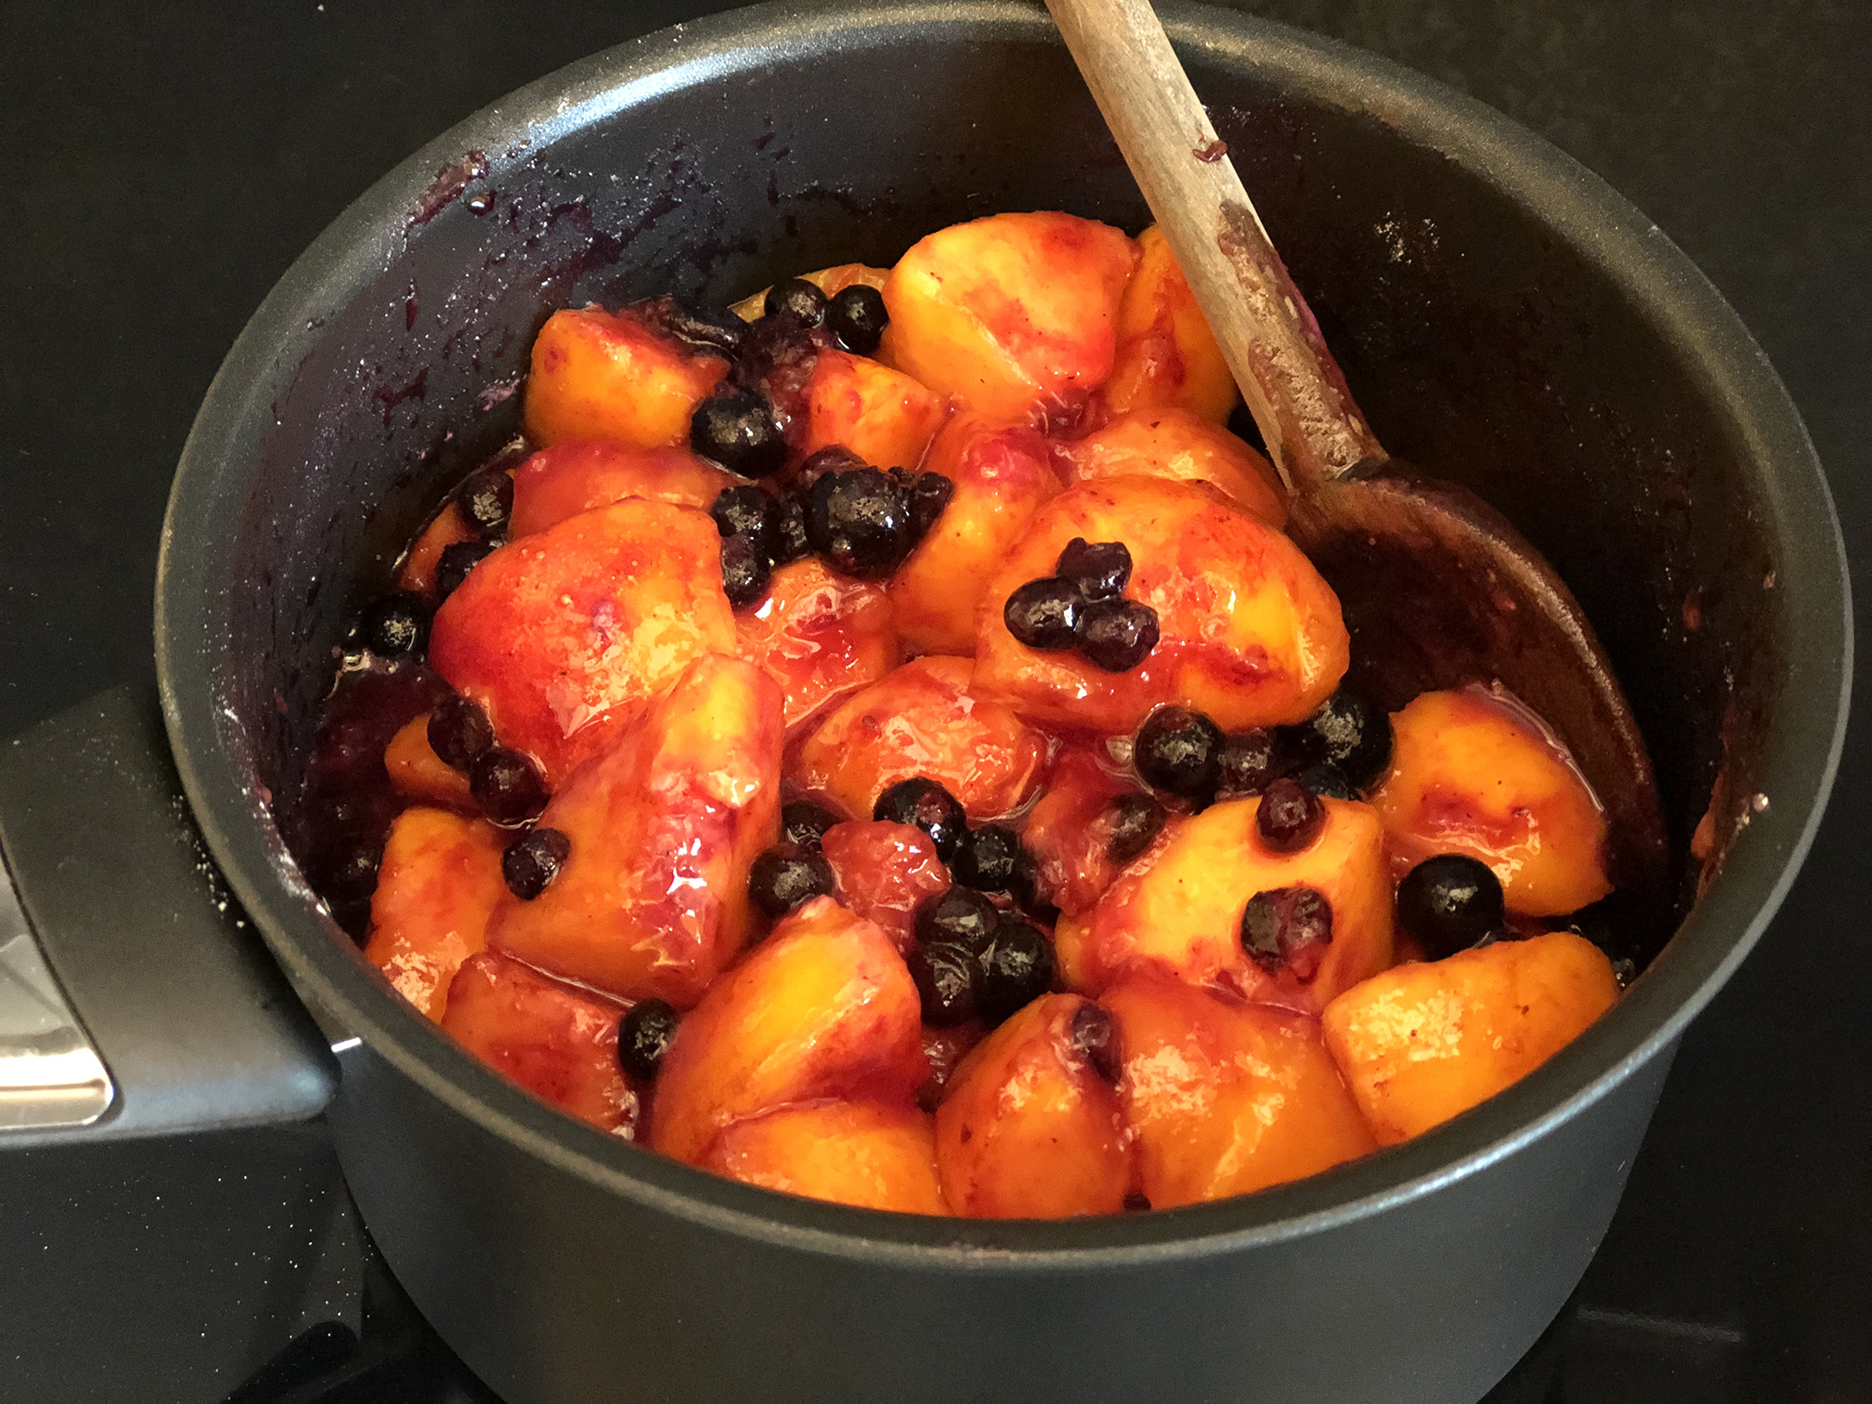 Simmering peaches and blackcurrant